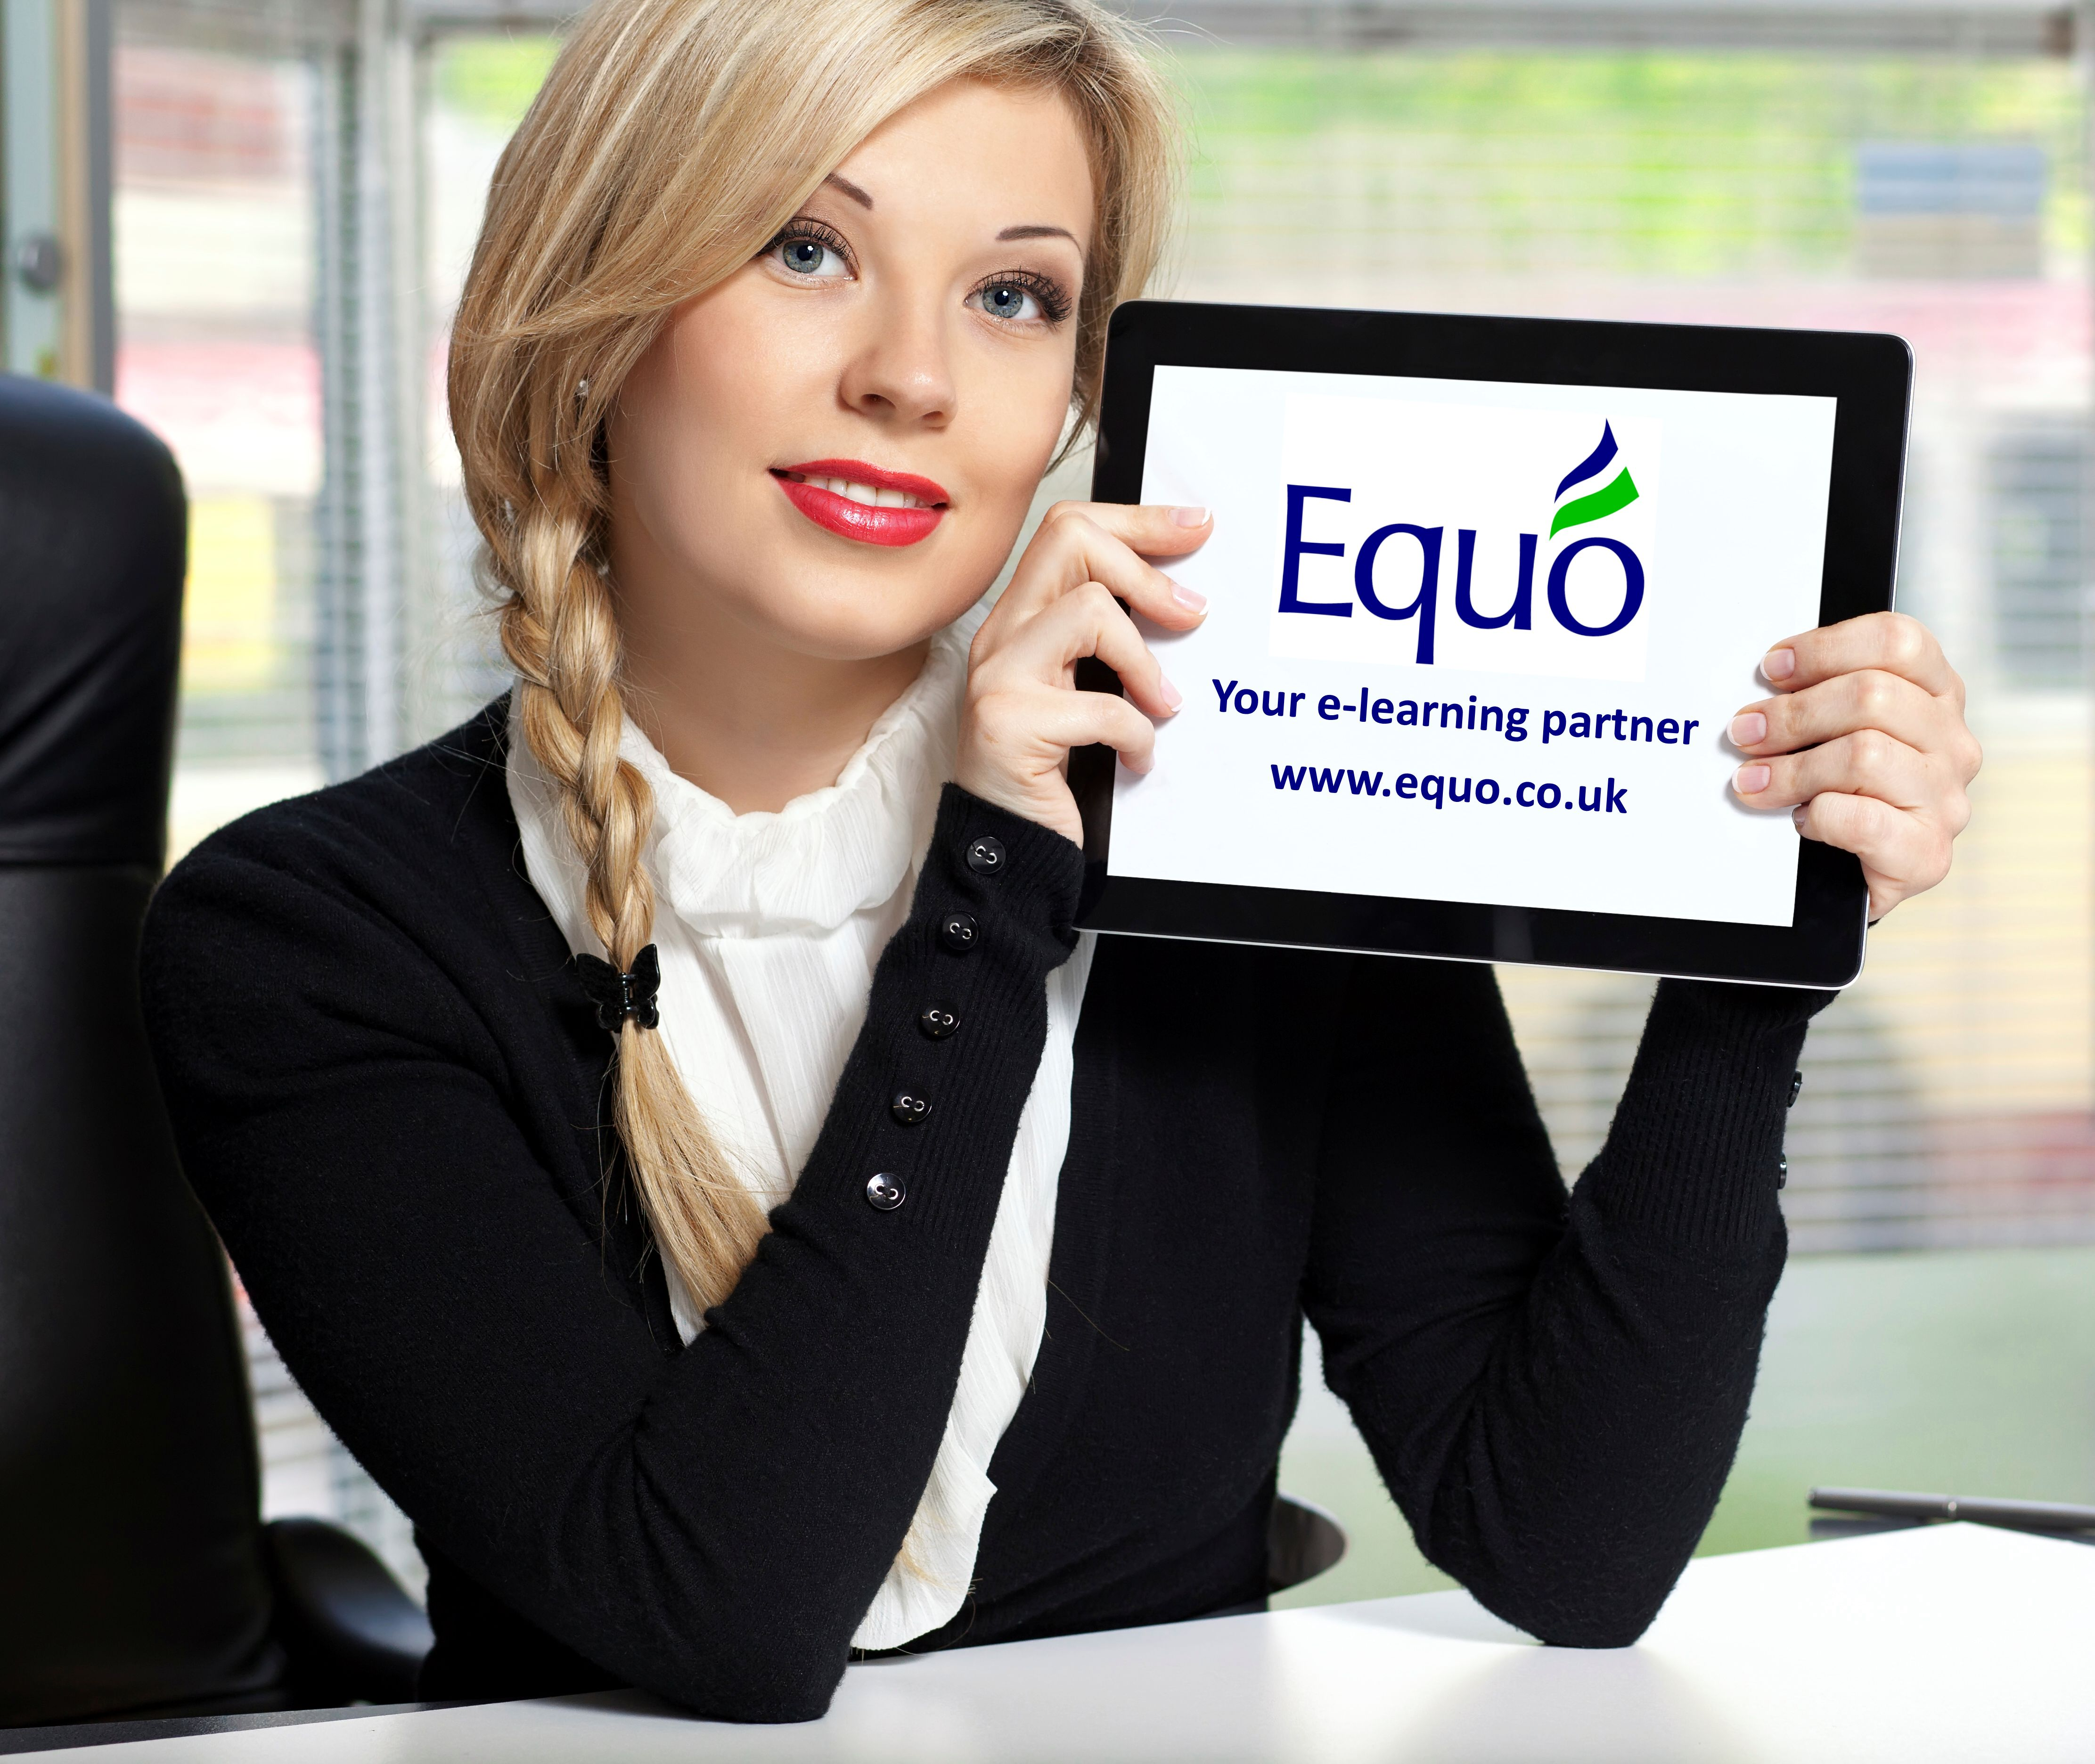 Equo - your online training partner